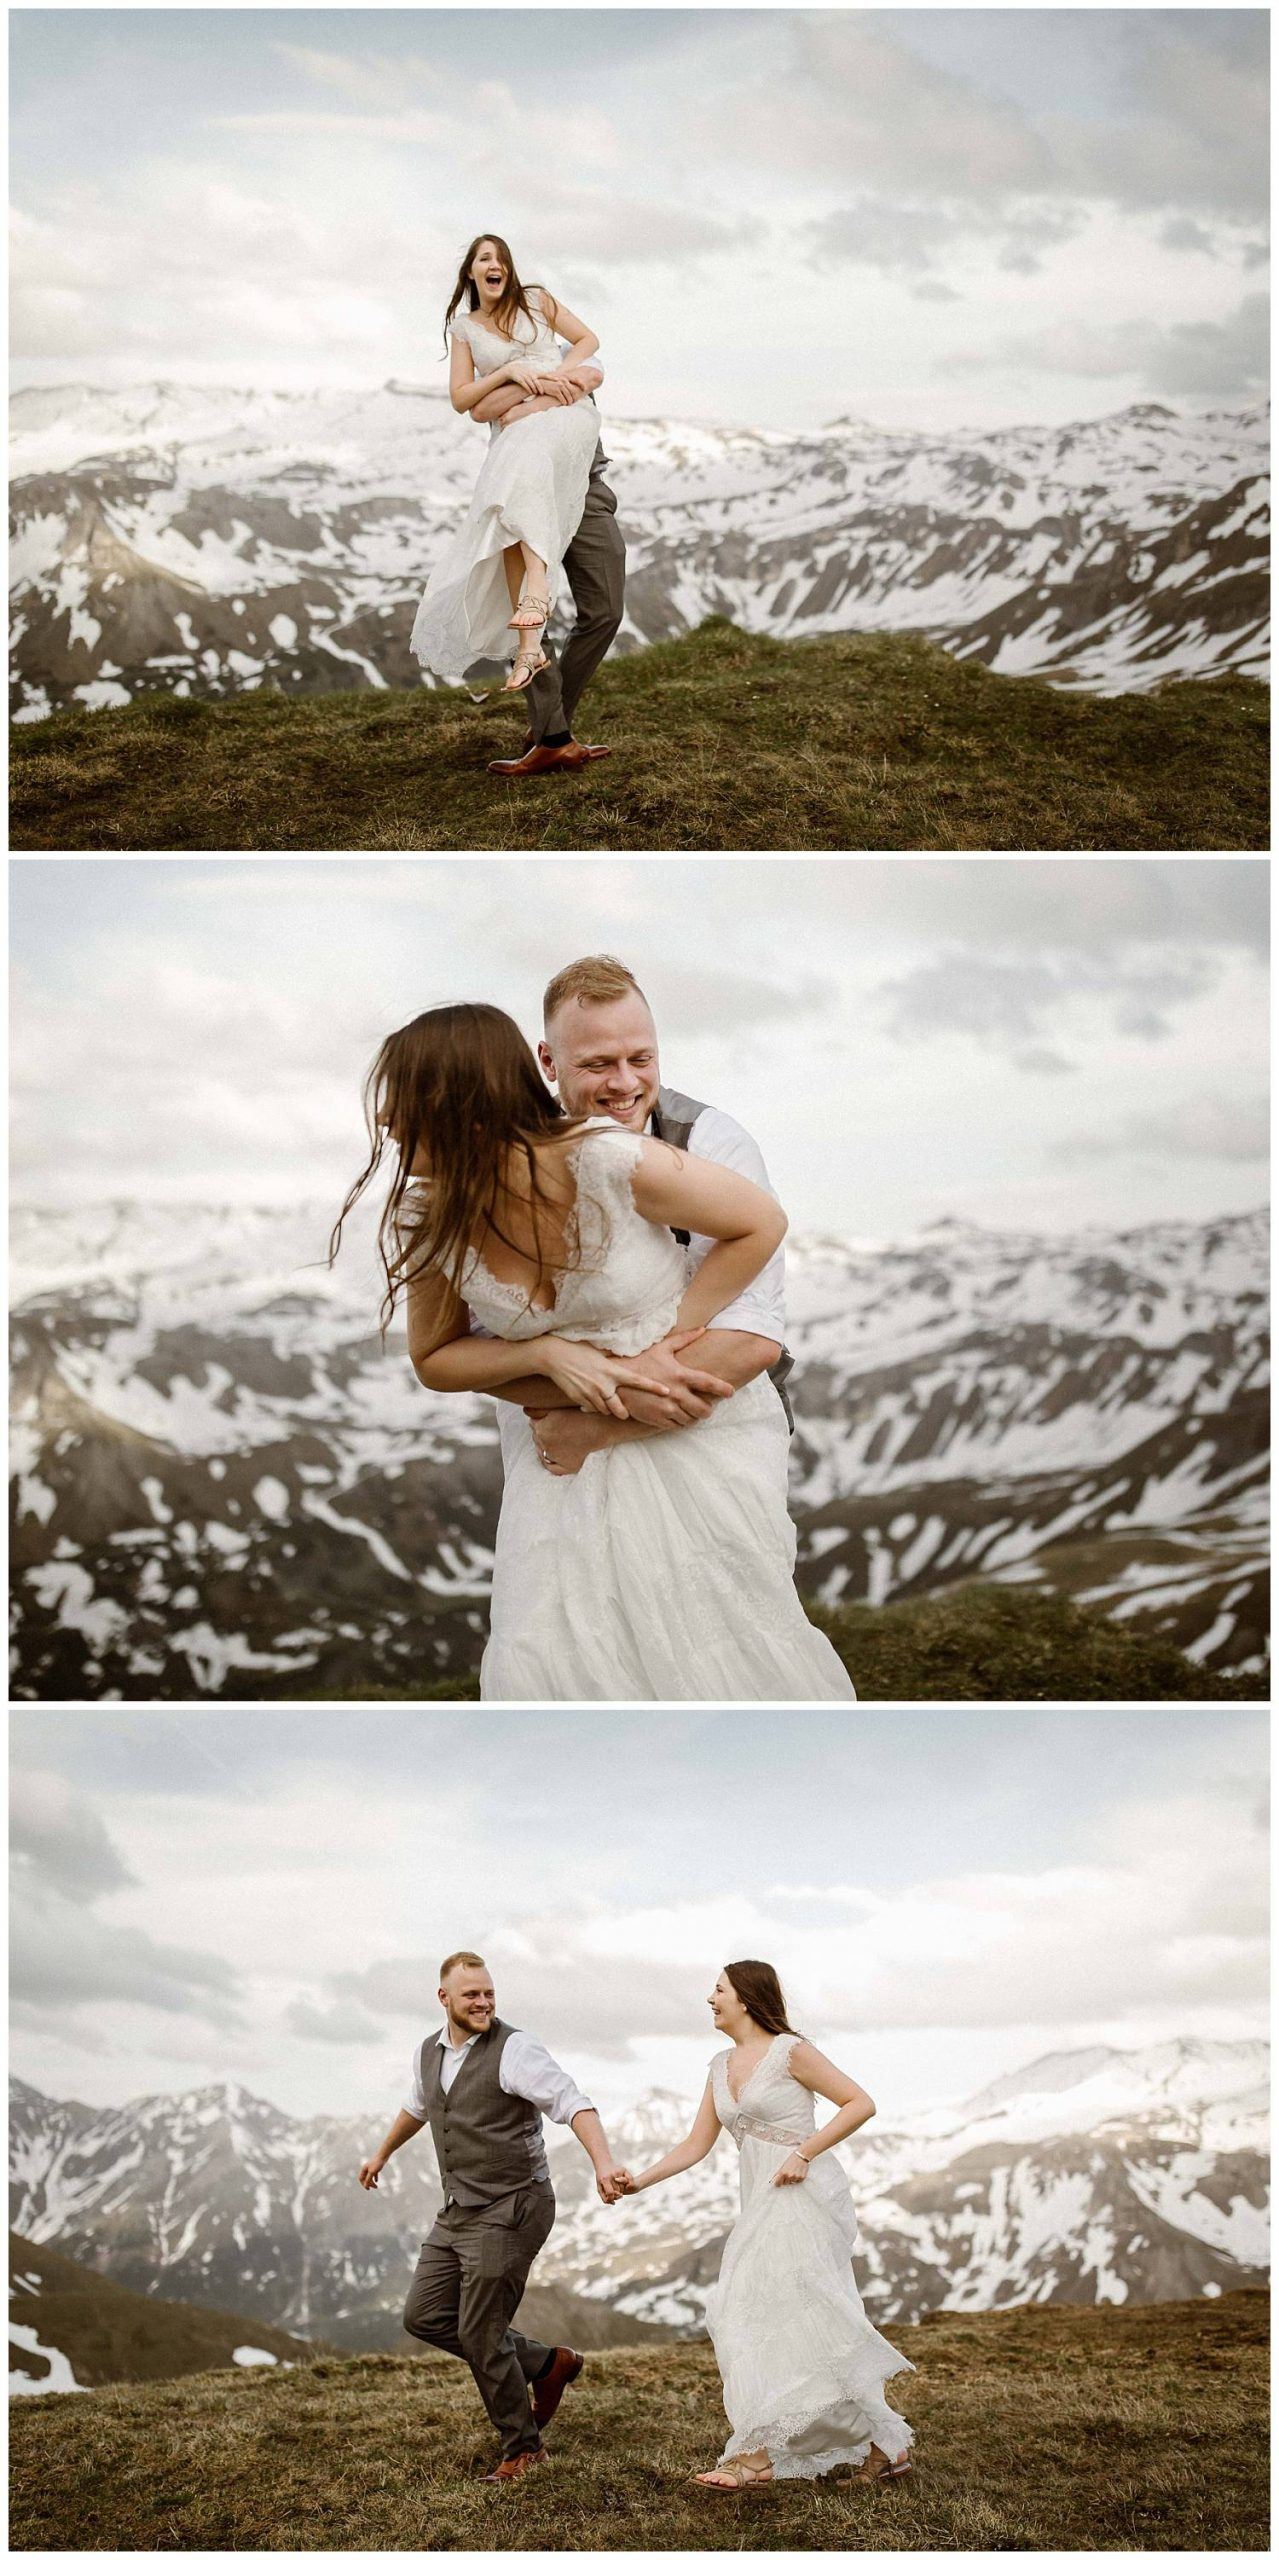 Wedding Vow Renewal in the mountains